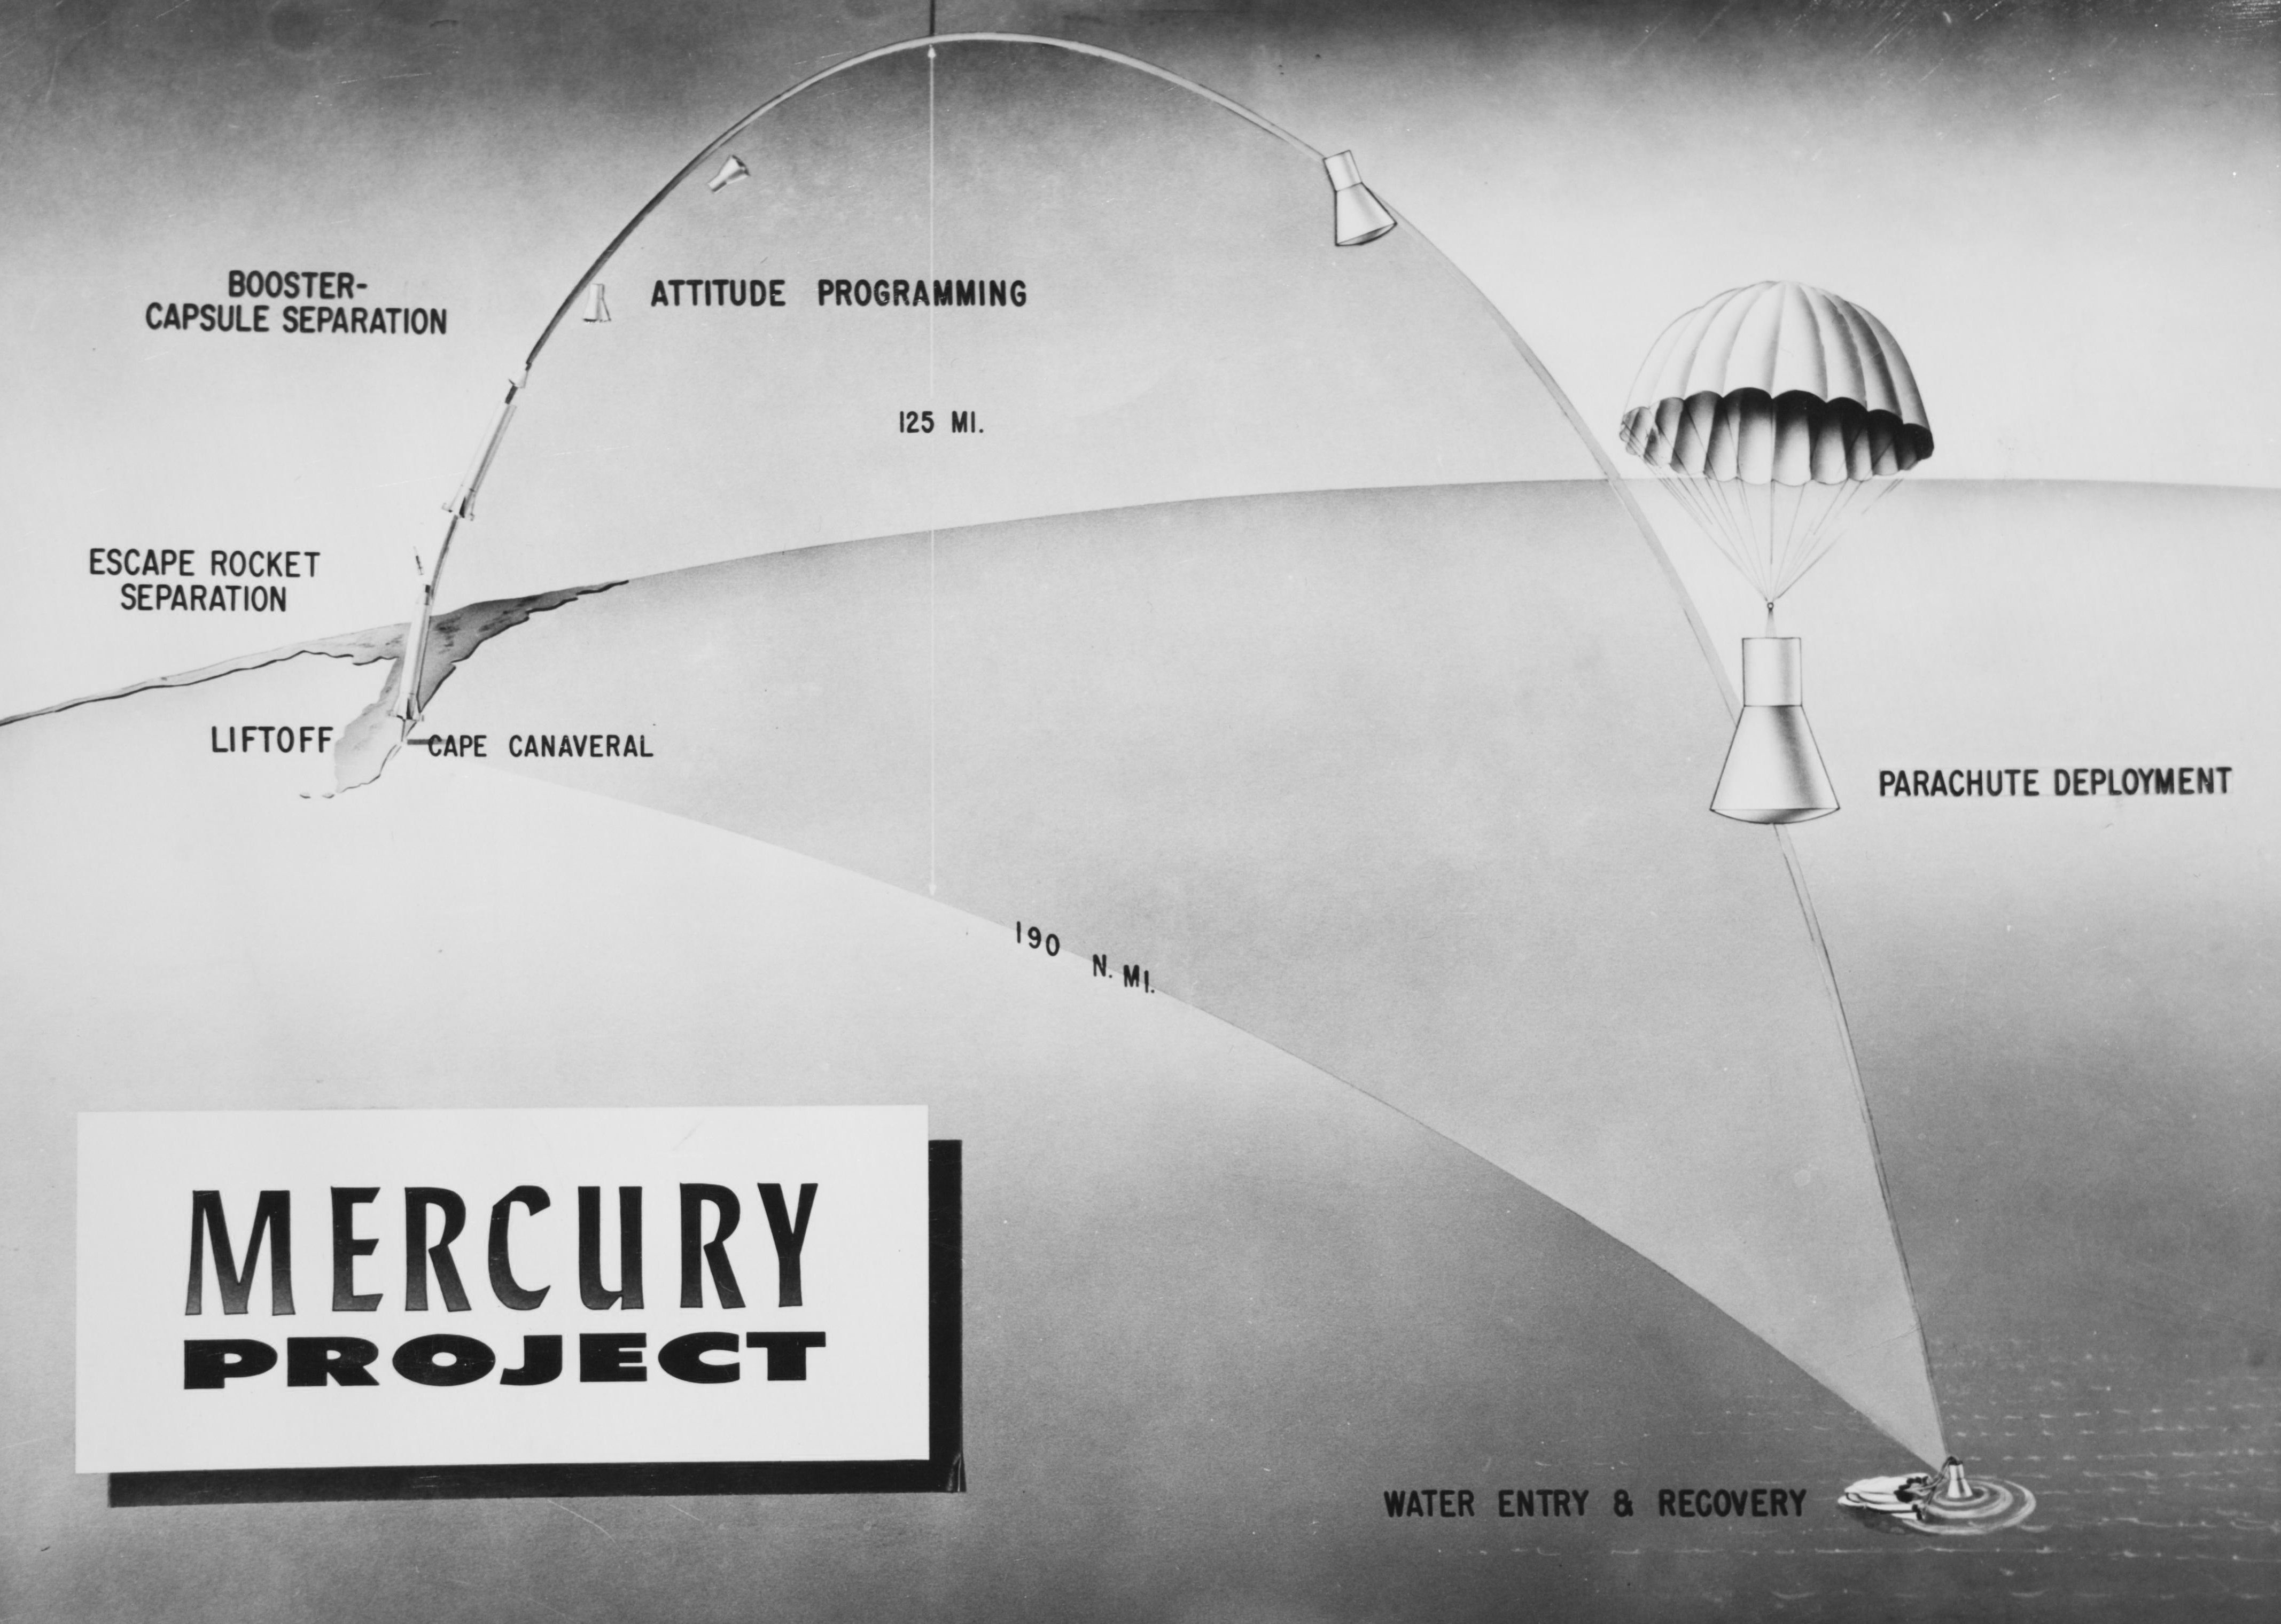 Mercury Space Program, the Mercury Capsule creating a parabolic arc over the ocean.